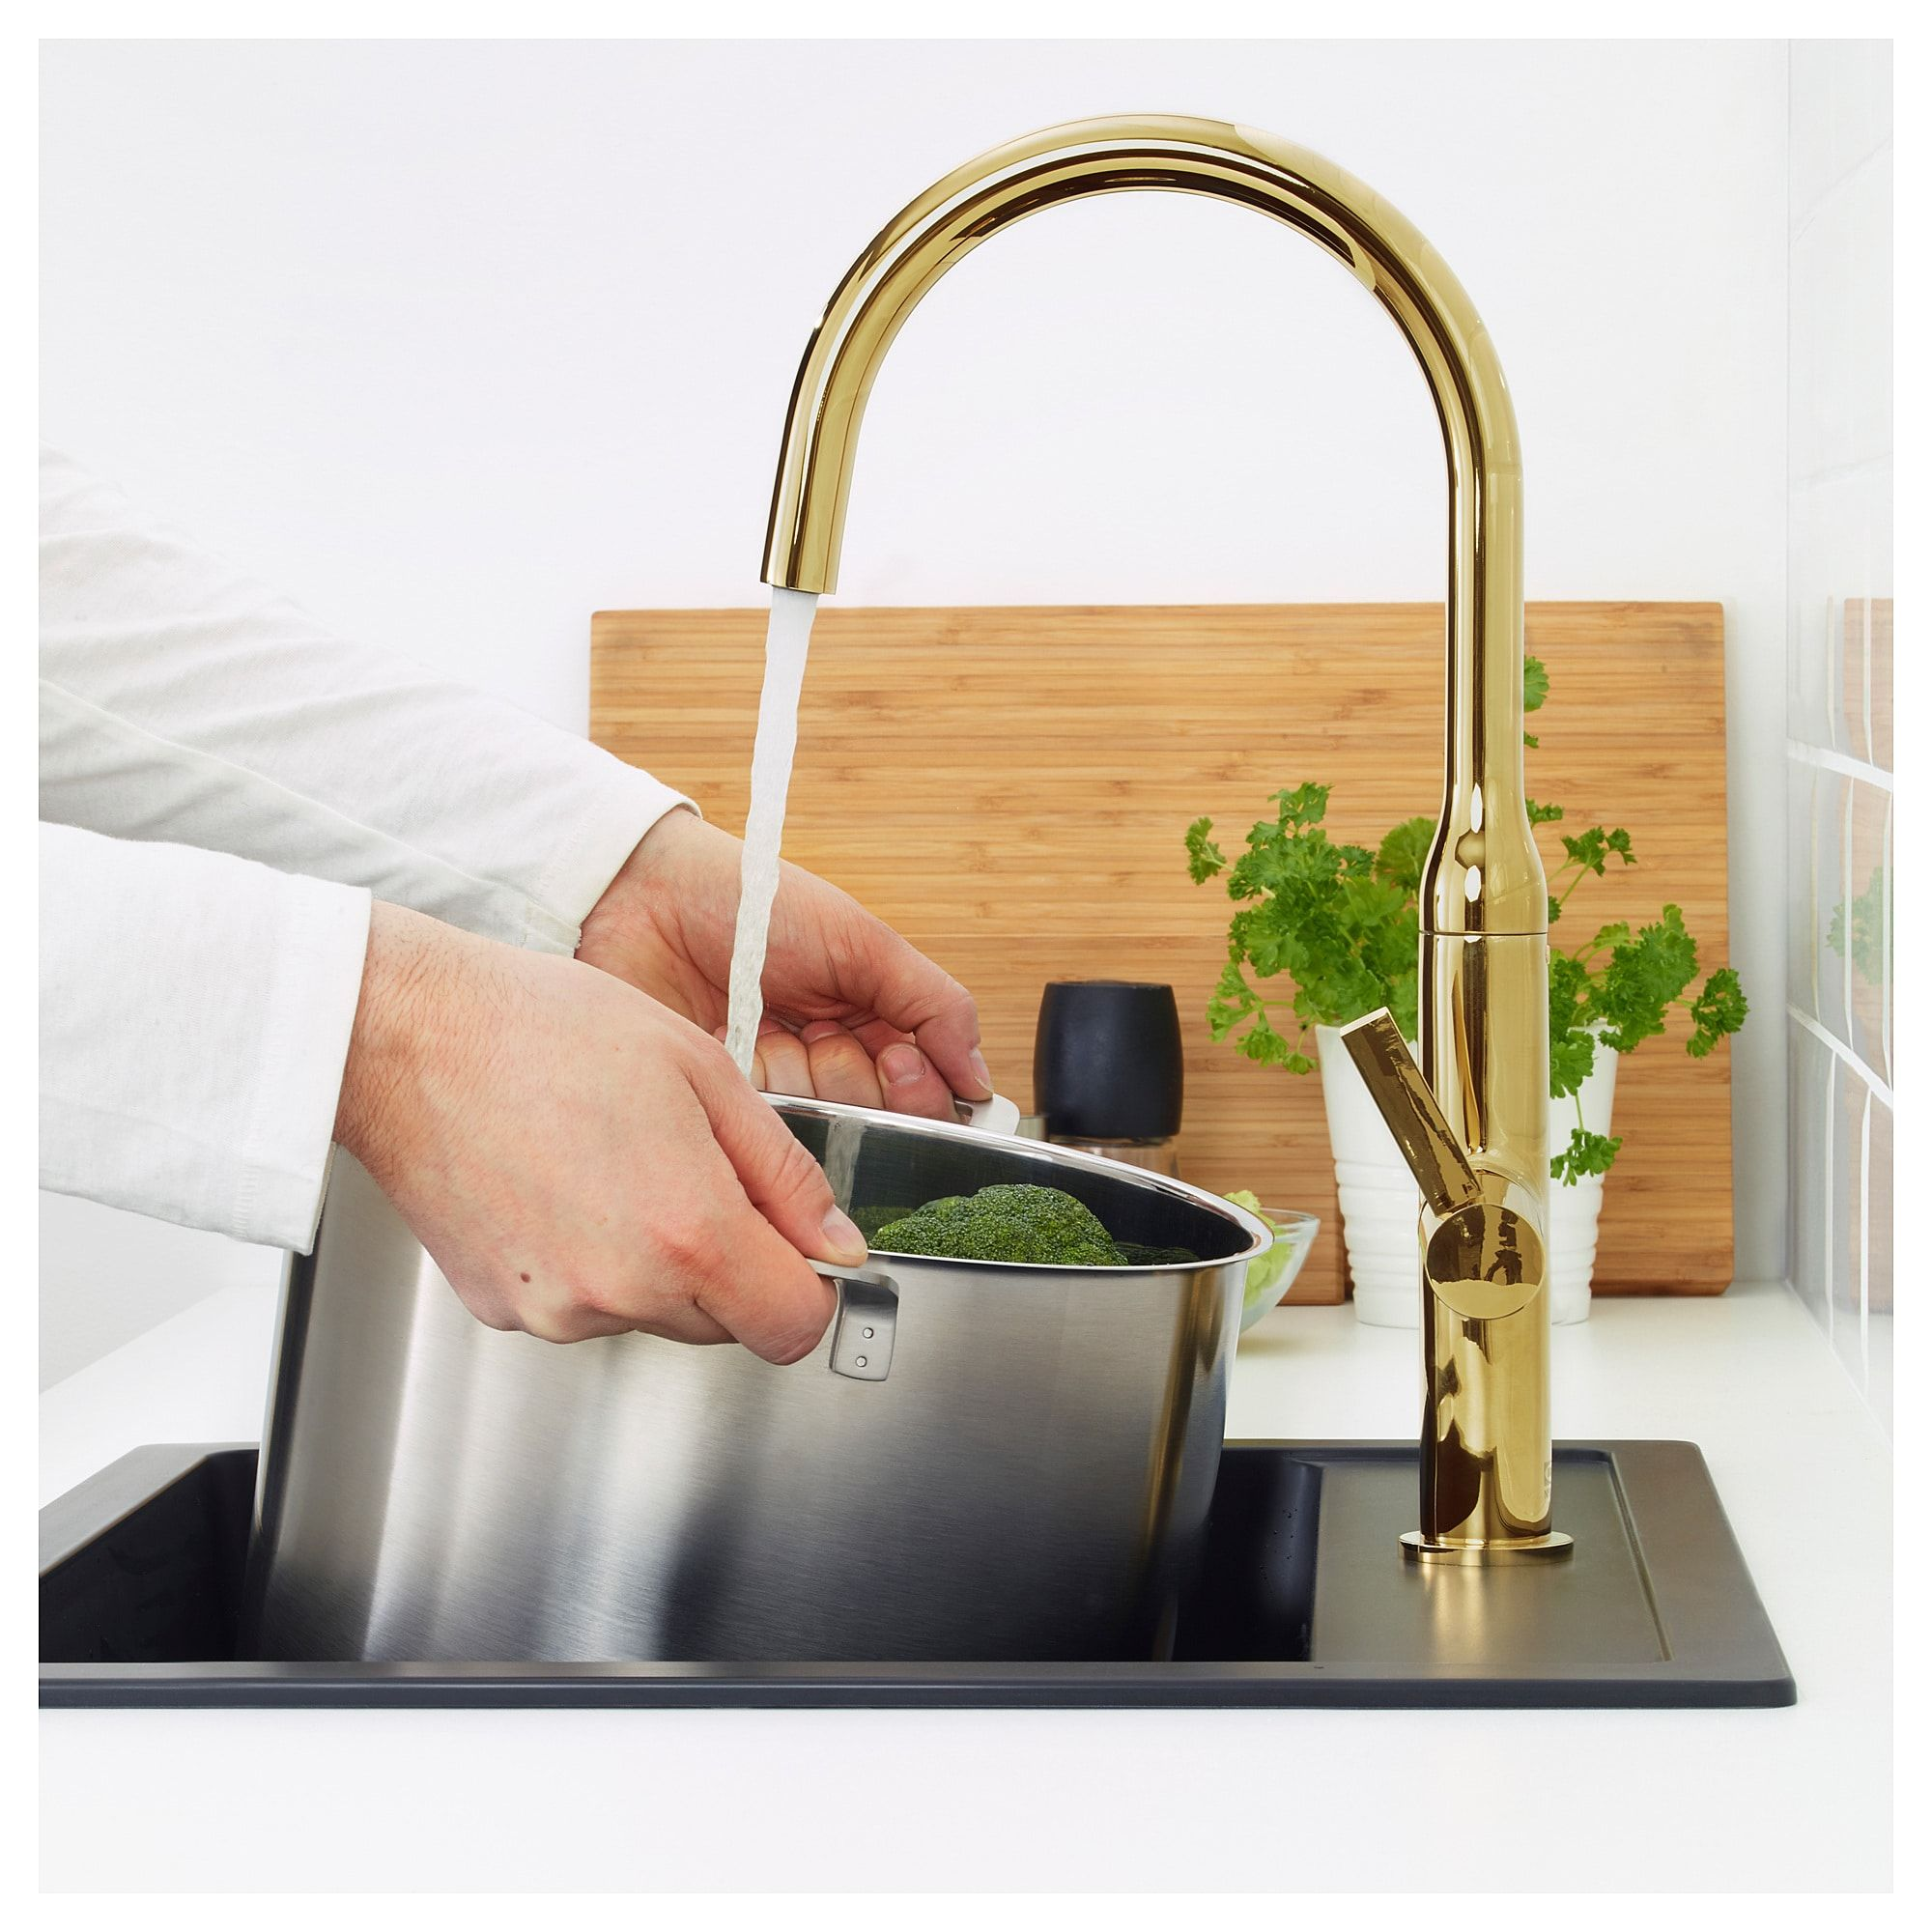 Nyvattnet Kitchen Faucet Polished Polished Brass Color In 2020 Brushed Brass Kitchen Faucet Kitchen Mixer Taps Faucet